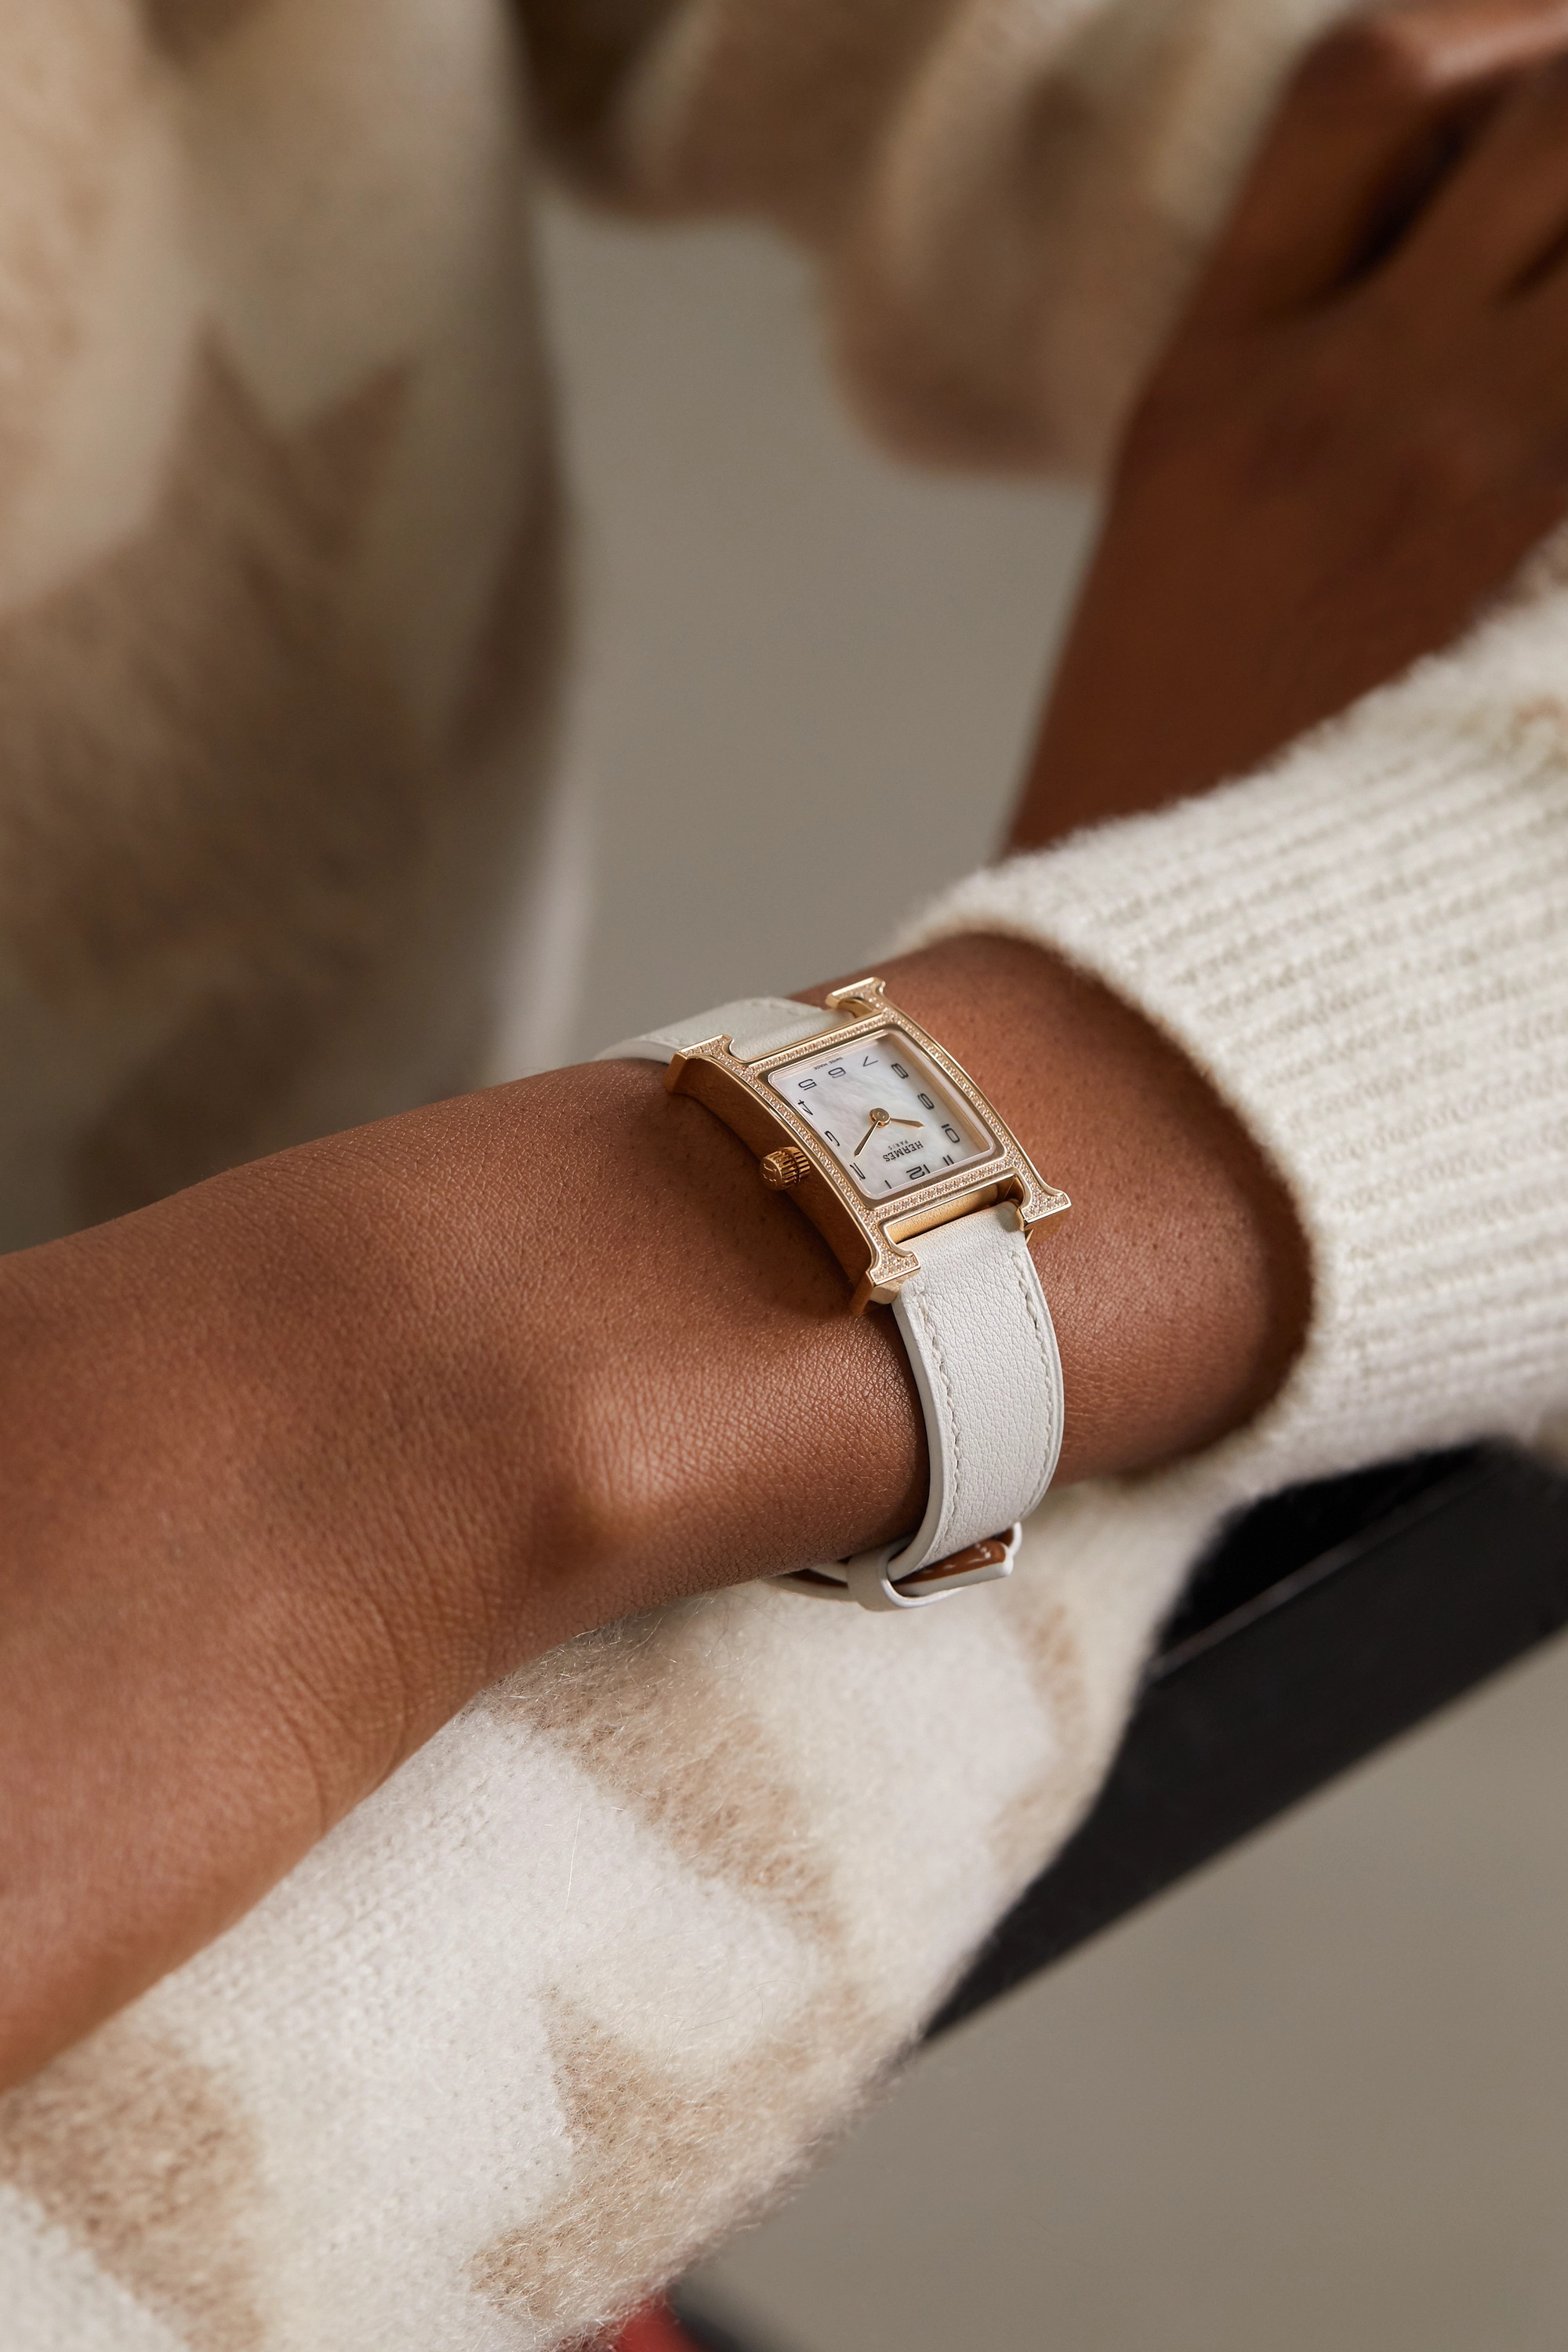 Hermès Timepieces Heure H 21mm small 18-karat rose gold, leather, mother-of-pearl and diamond watch